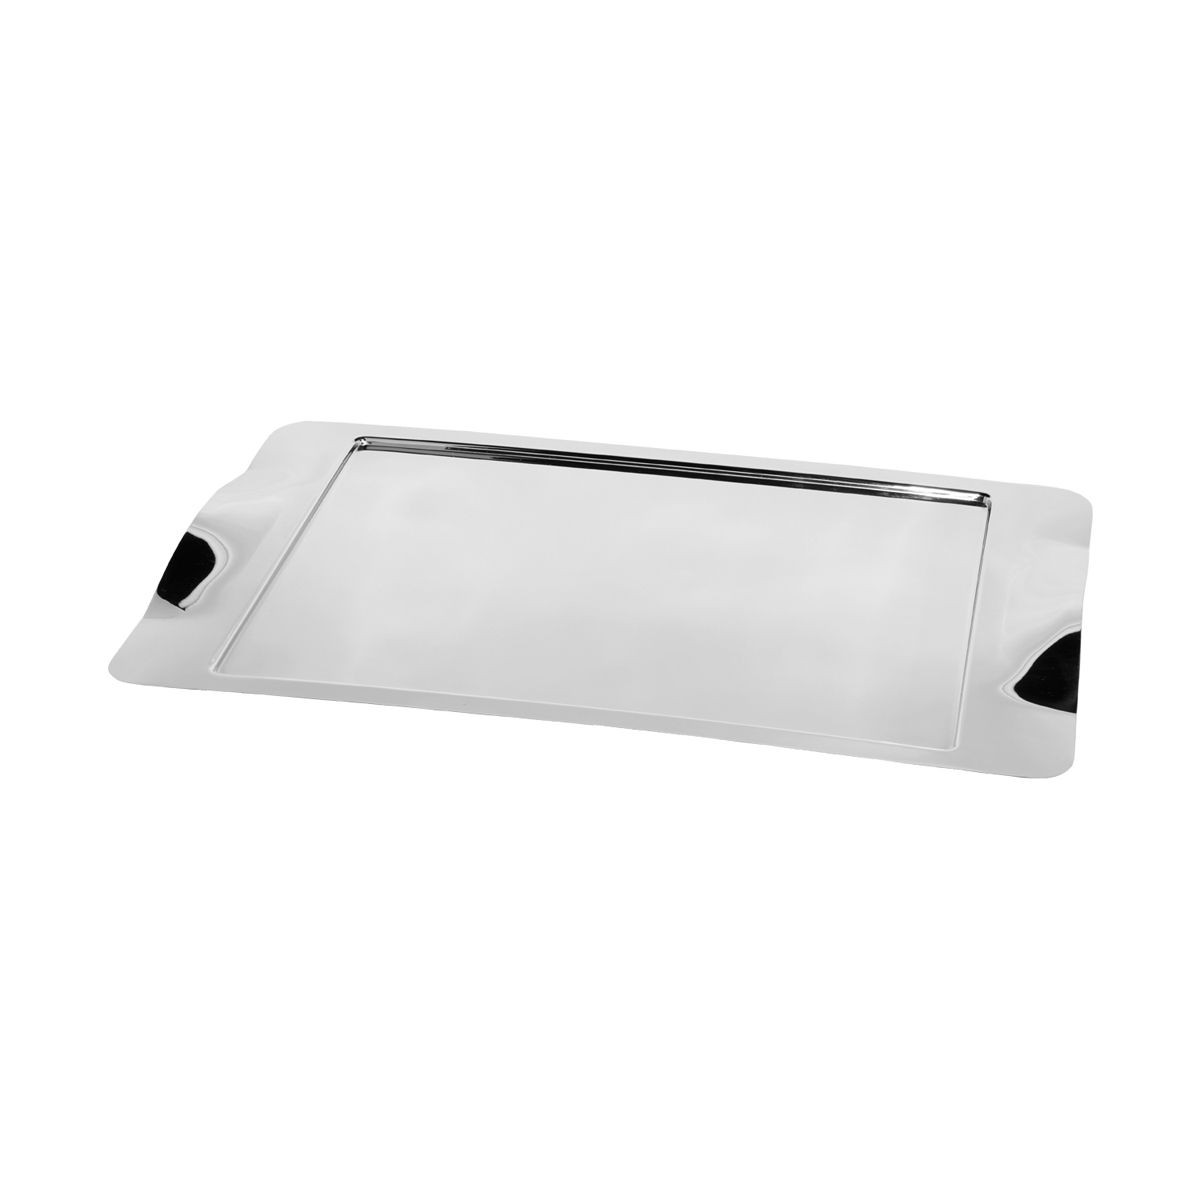 "Service Ideas SM-42 Rectangular Tray with Contoured Handles, 20"" x 11"""